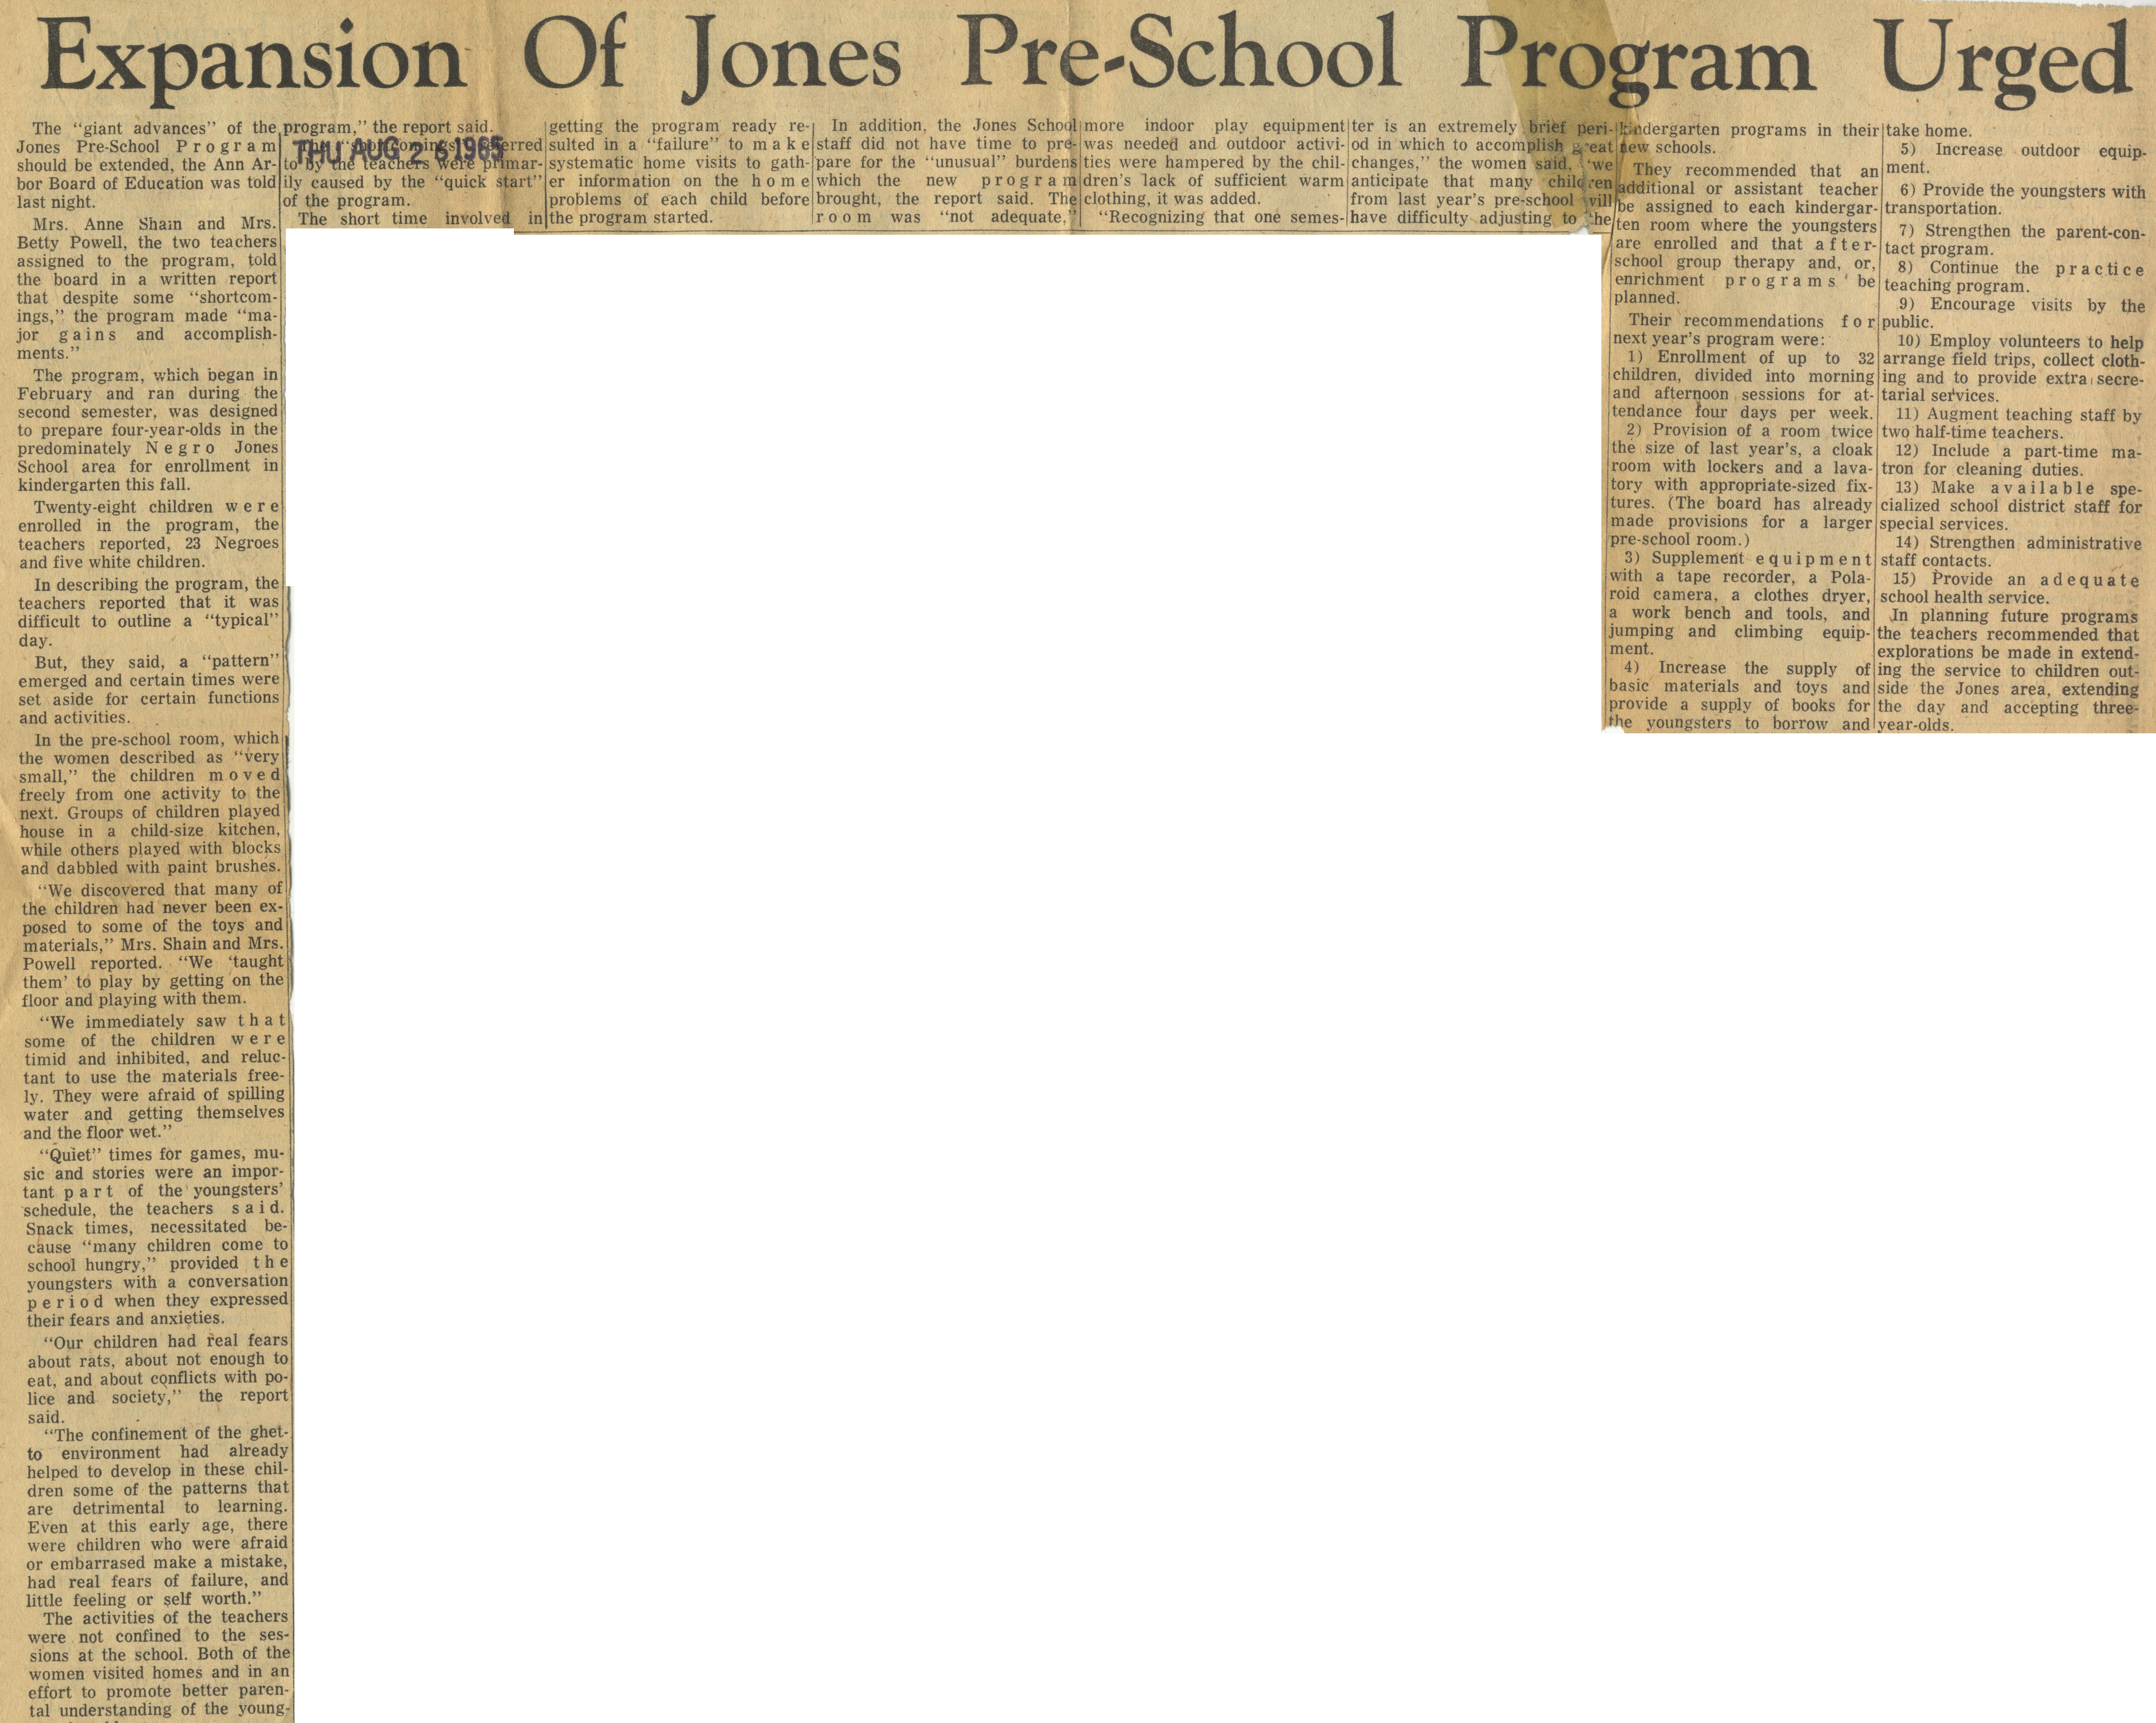 Expansion Of Jones Pre-School Program Urged image